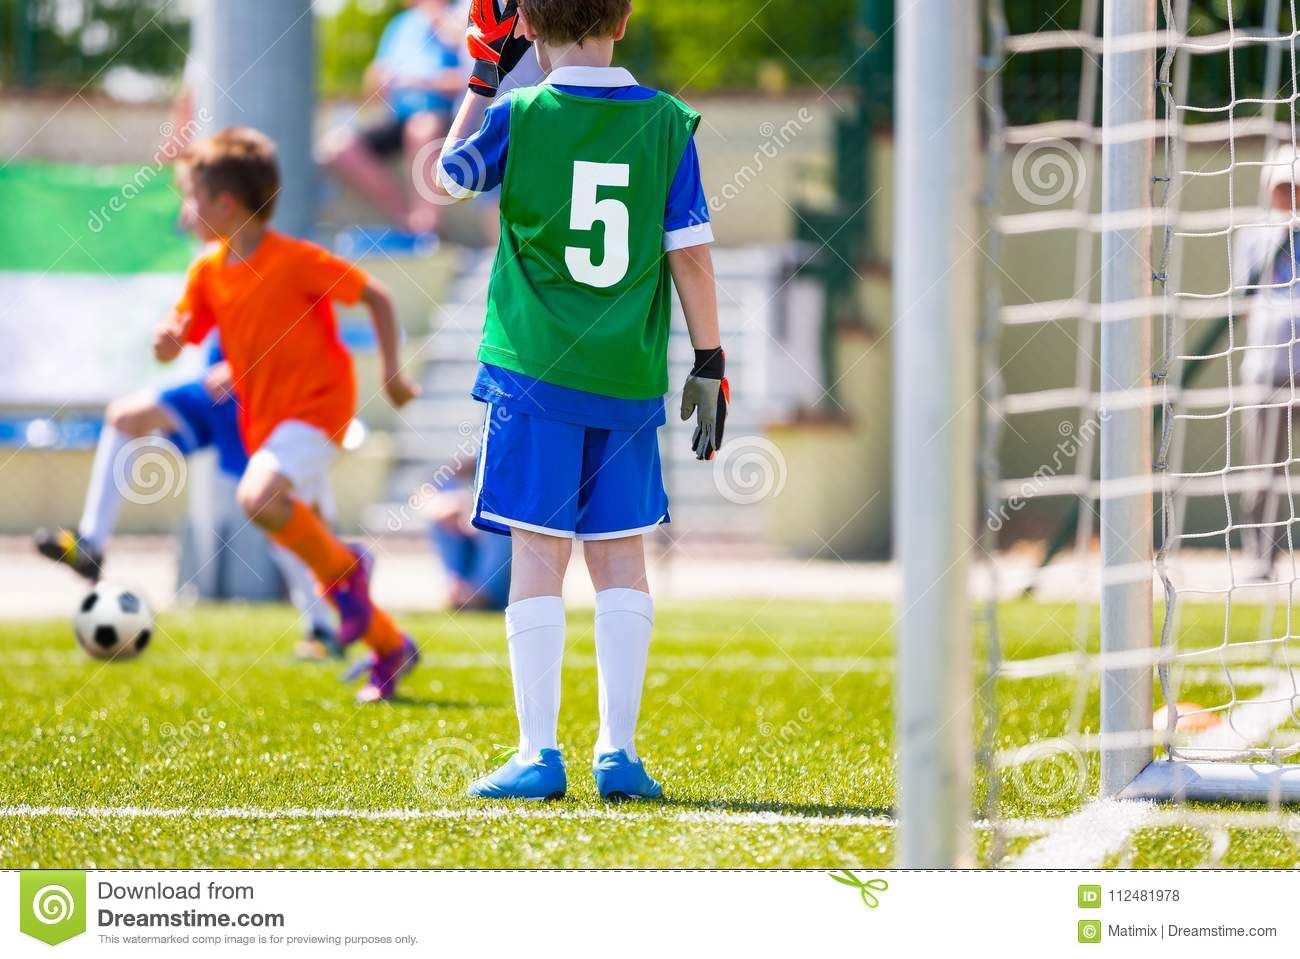 Football Training Game for Kids. Young Boy as a Football Goalkeeper Standing in a Goal. Soccer Players Running After the Ball